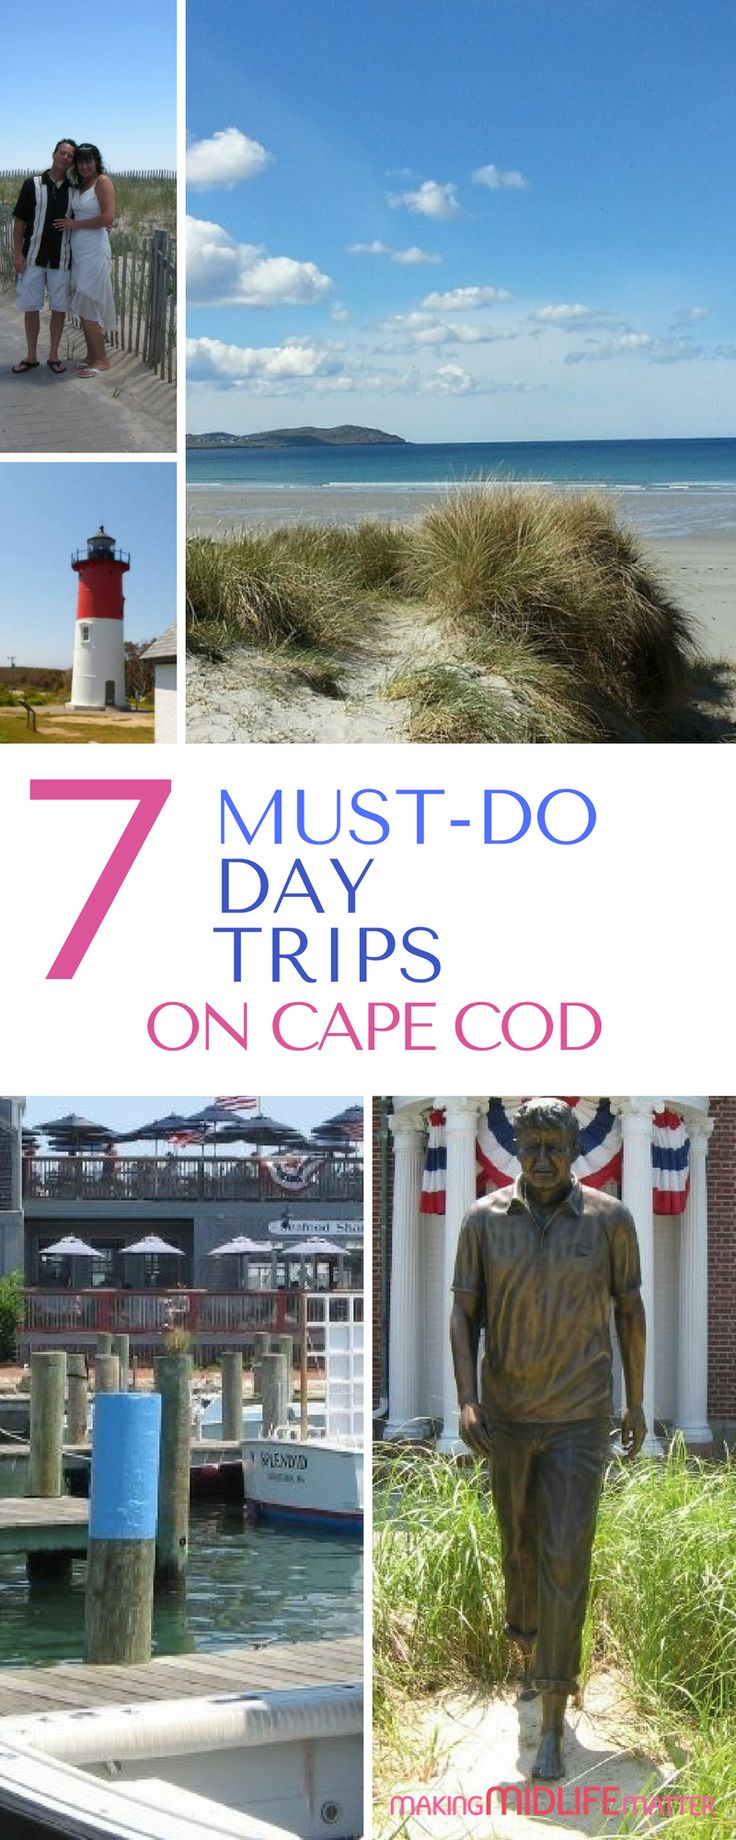 Plan your perfect summer vacation now with these 7 must-do day trips on Cape Cod. So much to do and perfect for families or couples. via @makingmidlife